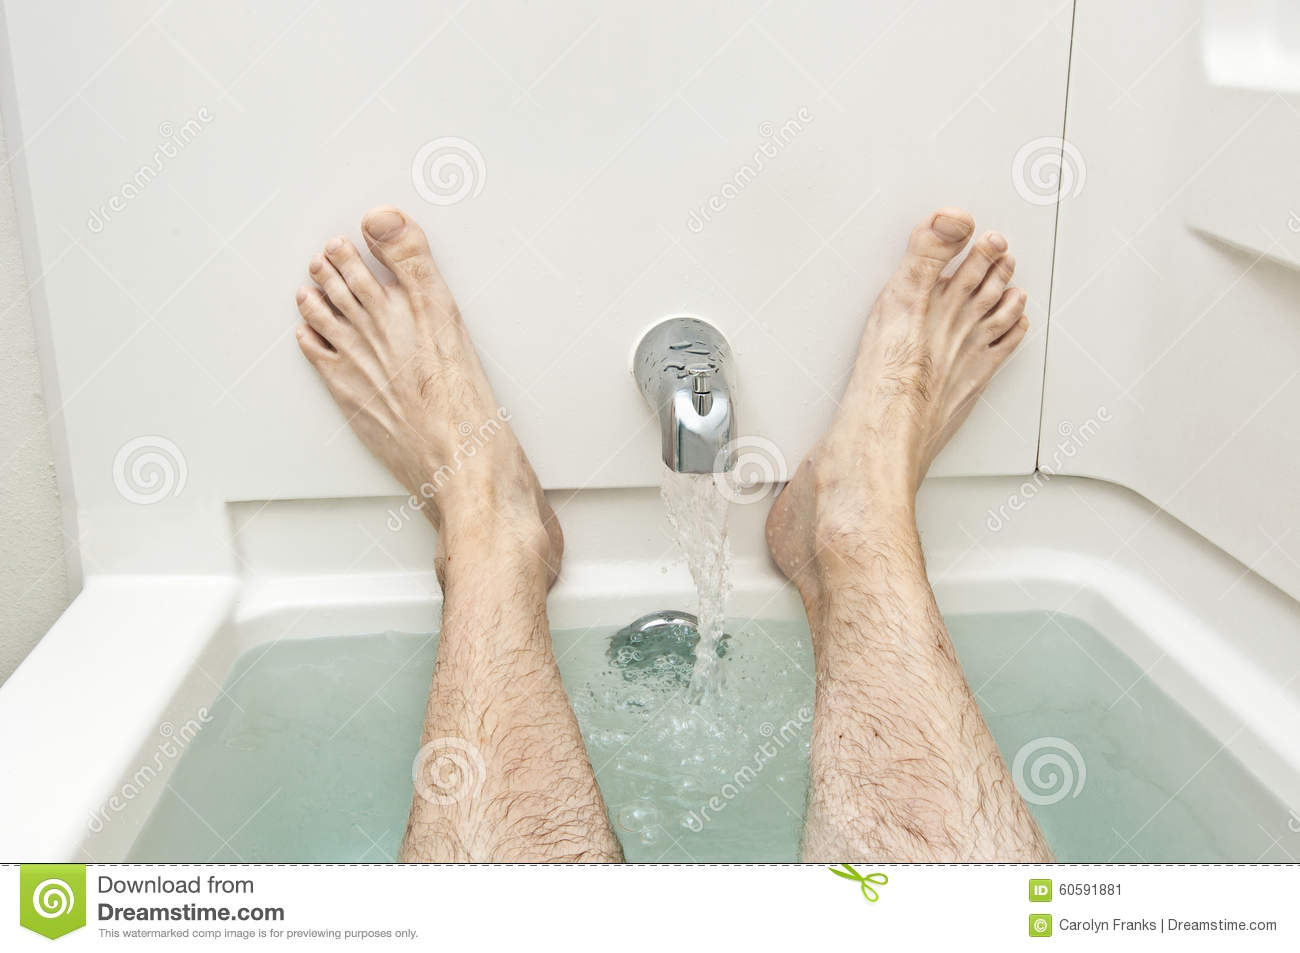 Bathtub With Water Running And Man\'s Feet Stock Image - Image of ...